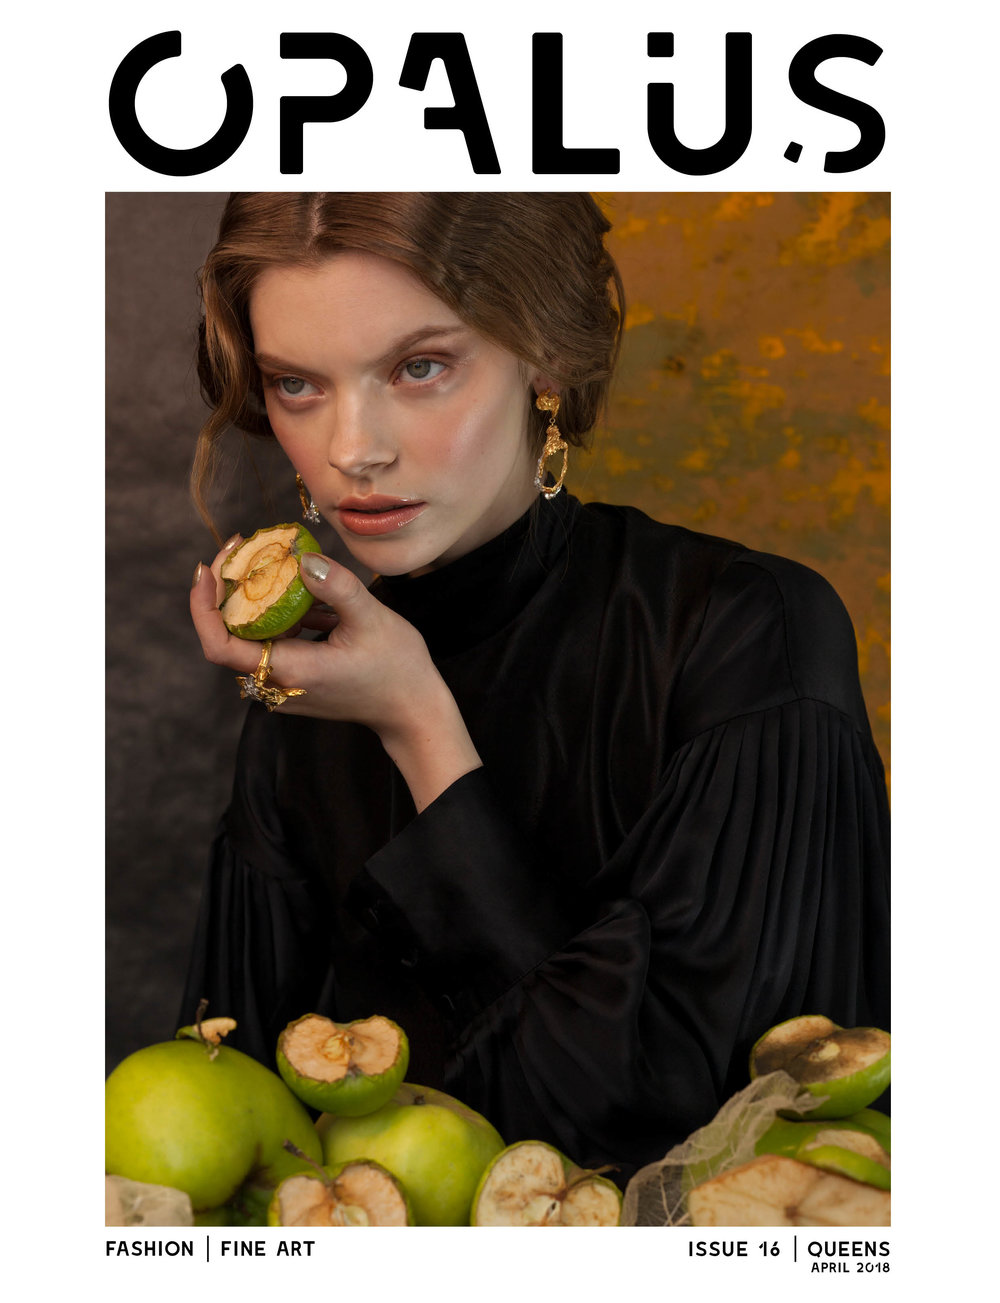 Loveness Lee Cephas and Solstice Featuring on the front cover of Opalus magazine